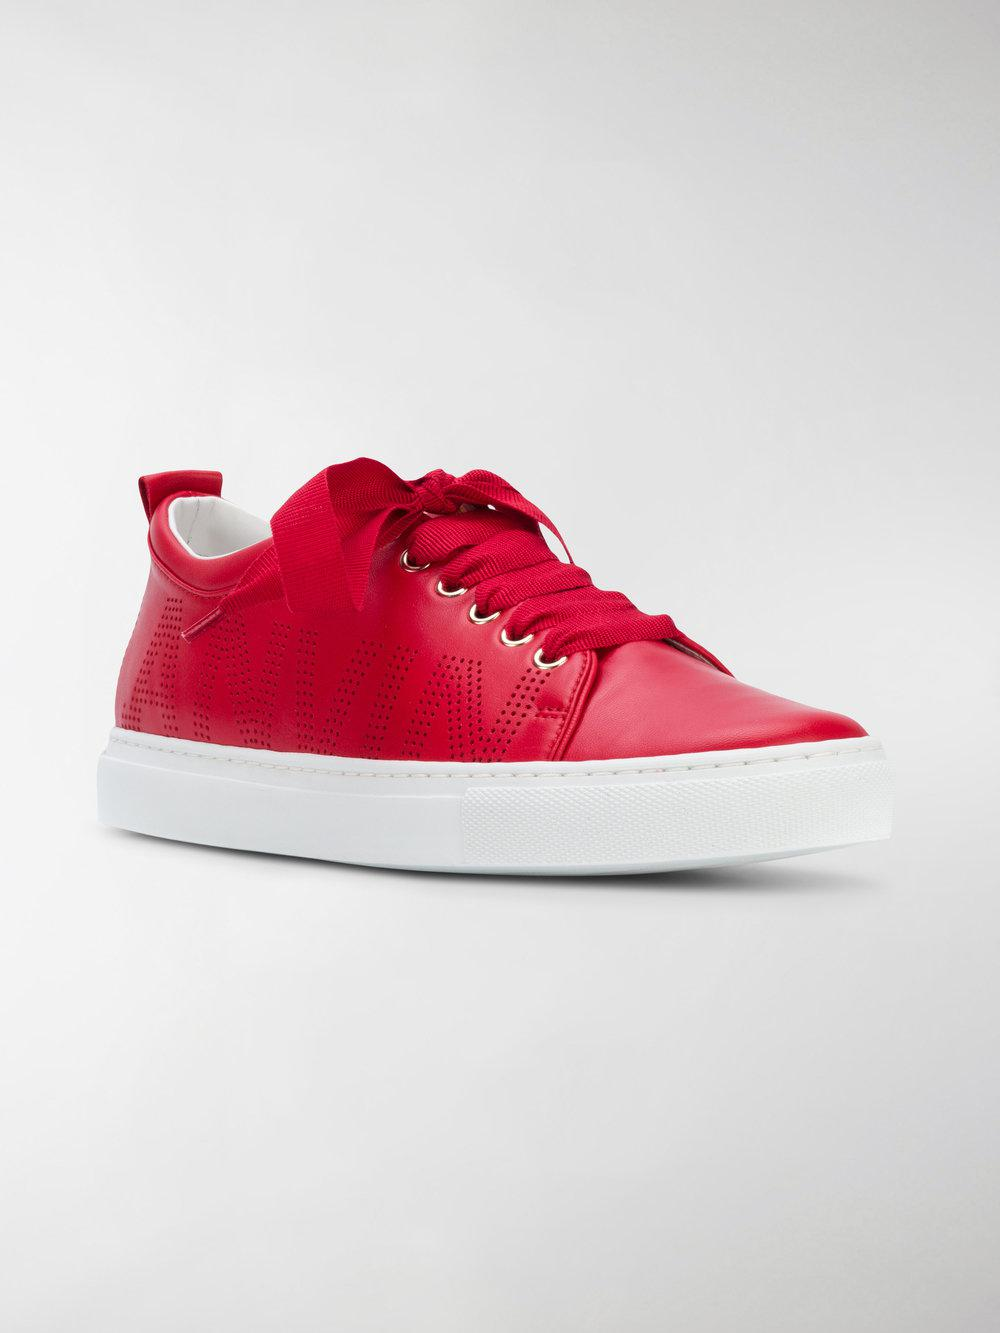 lace-up sneakers - Red Lanvin zp49lwl